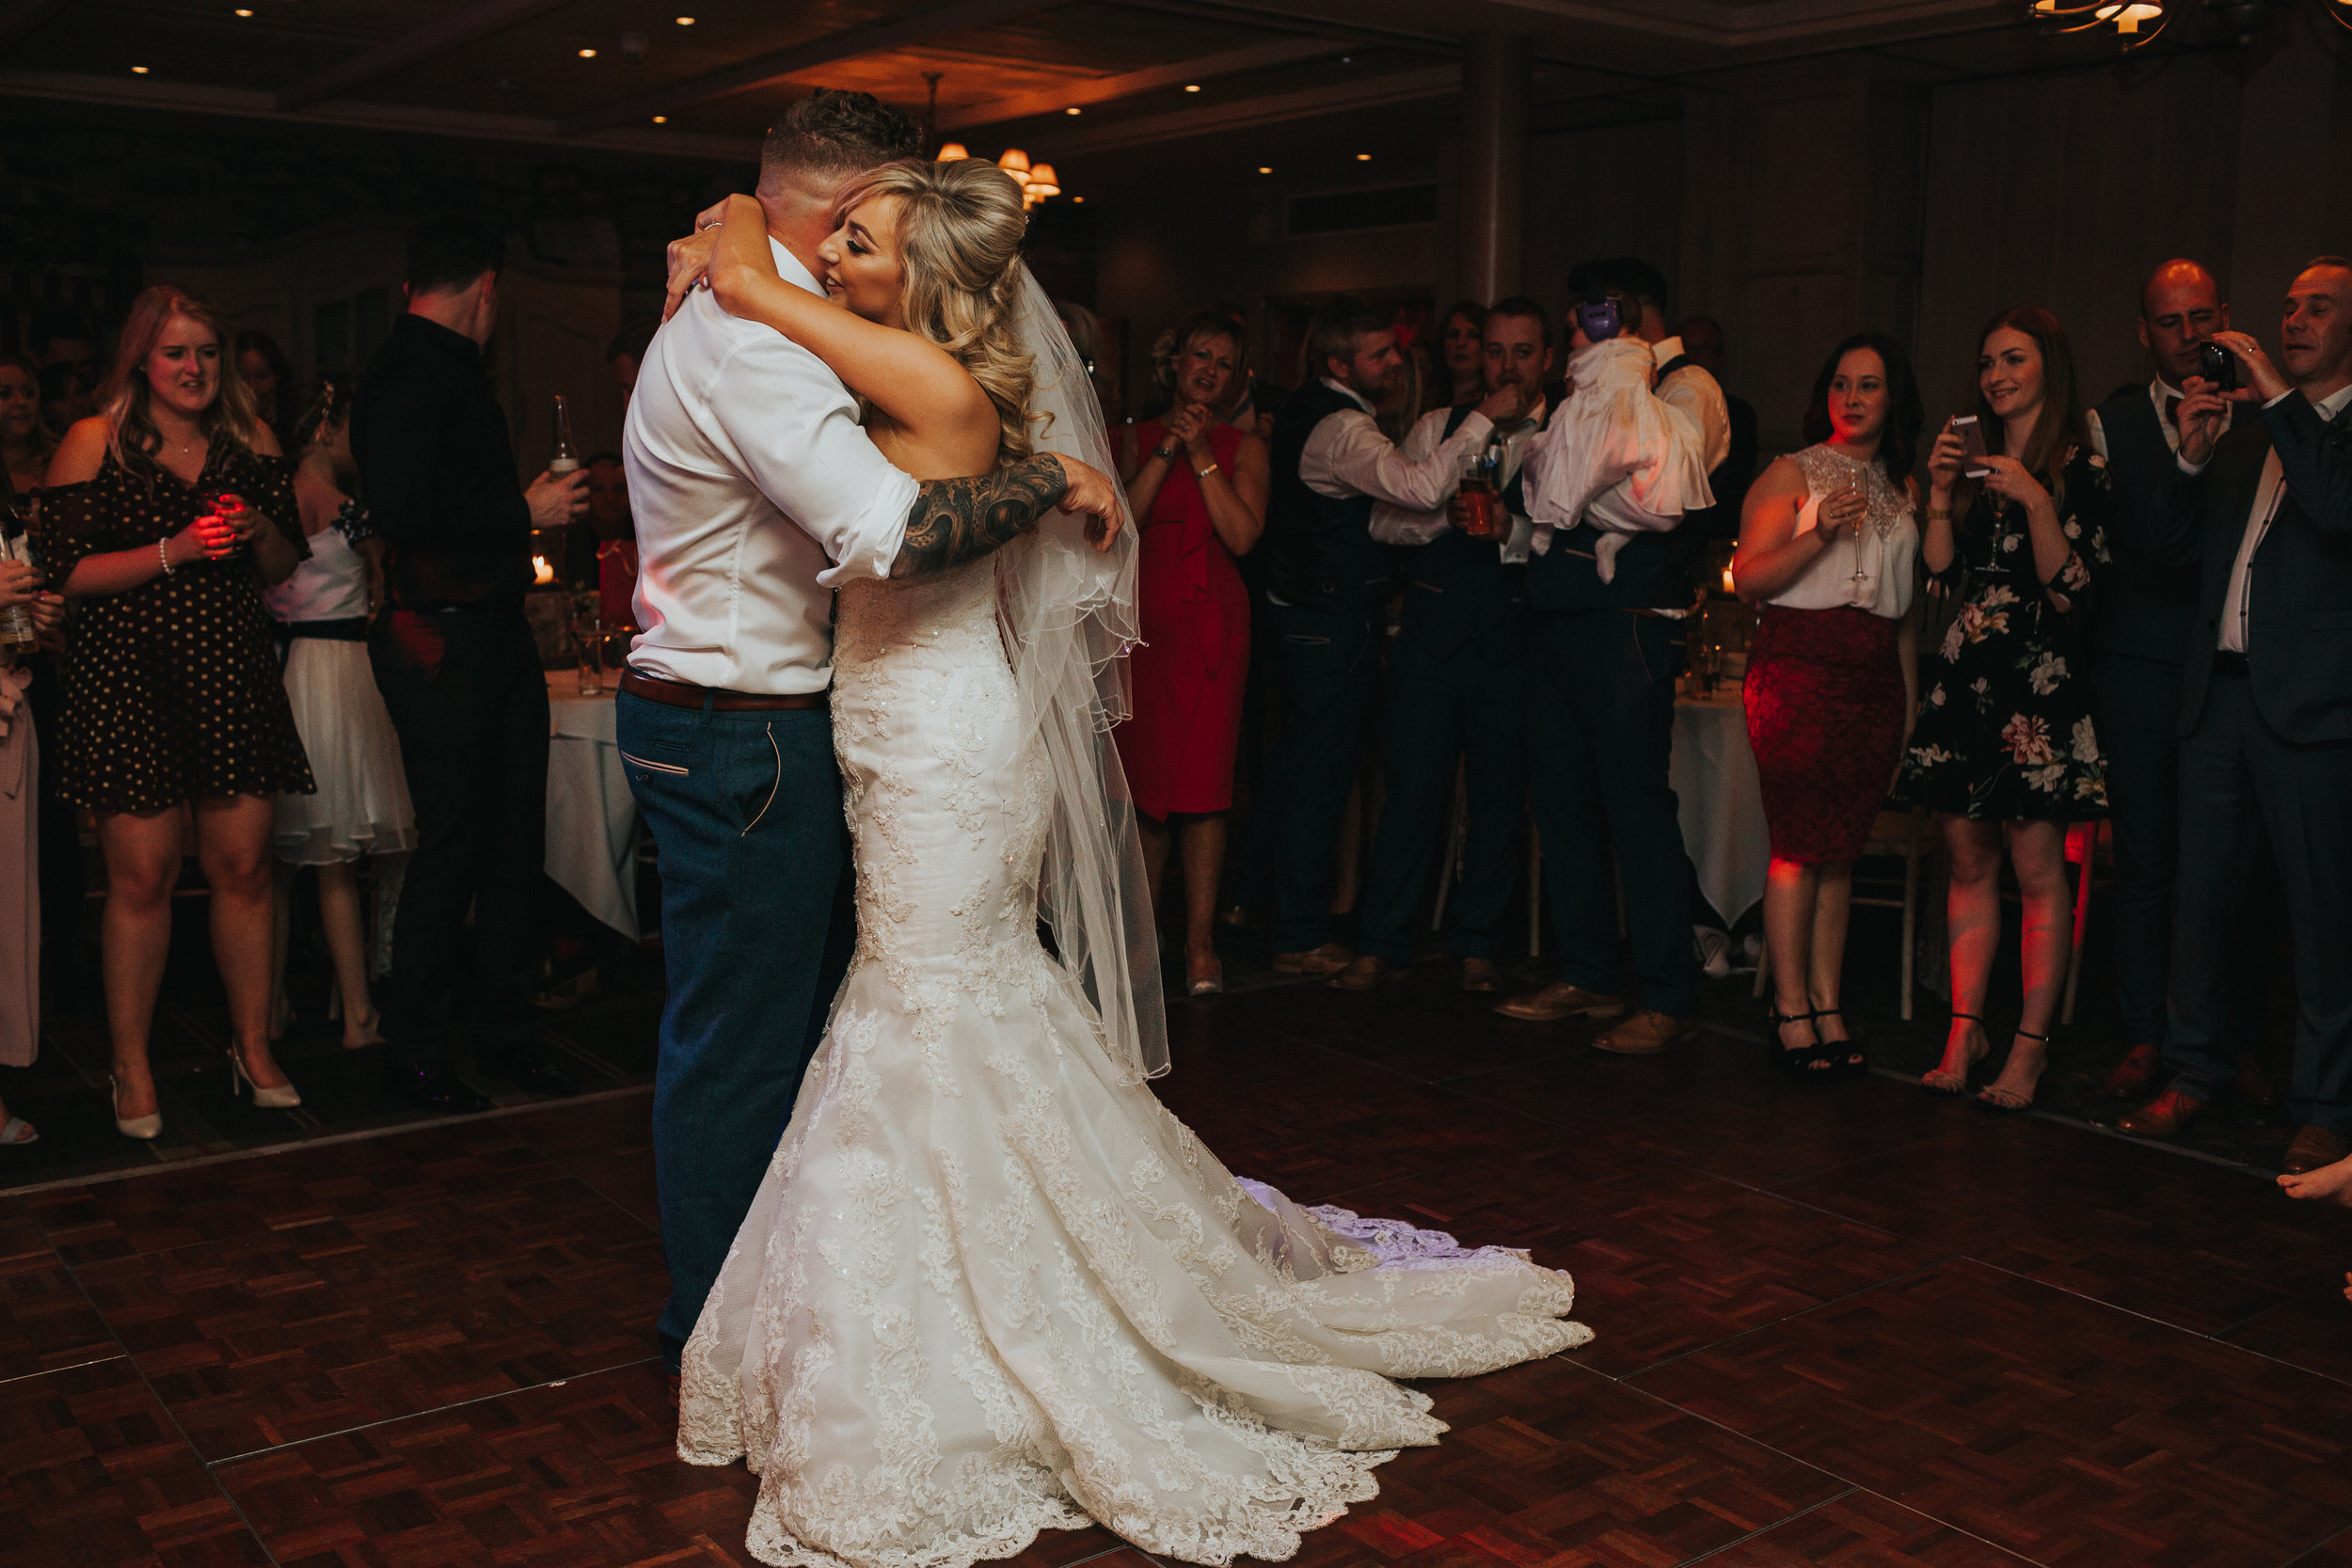 Bride and groom dance together alone.